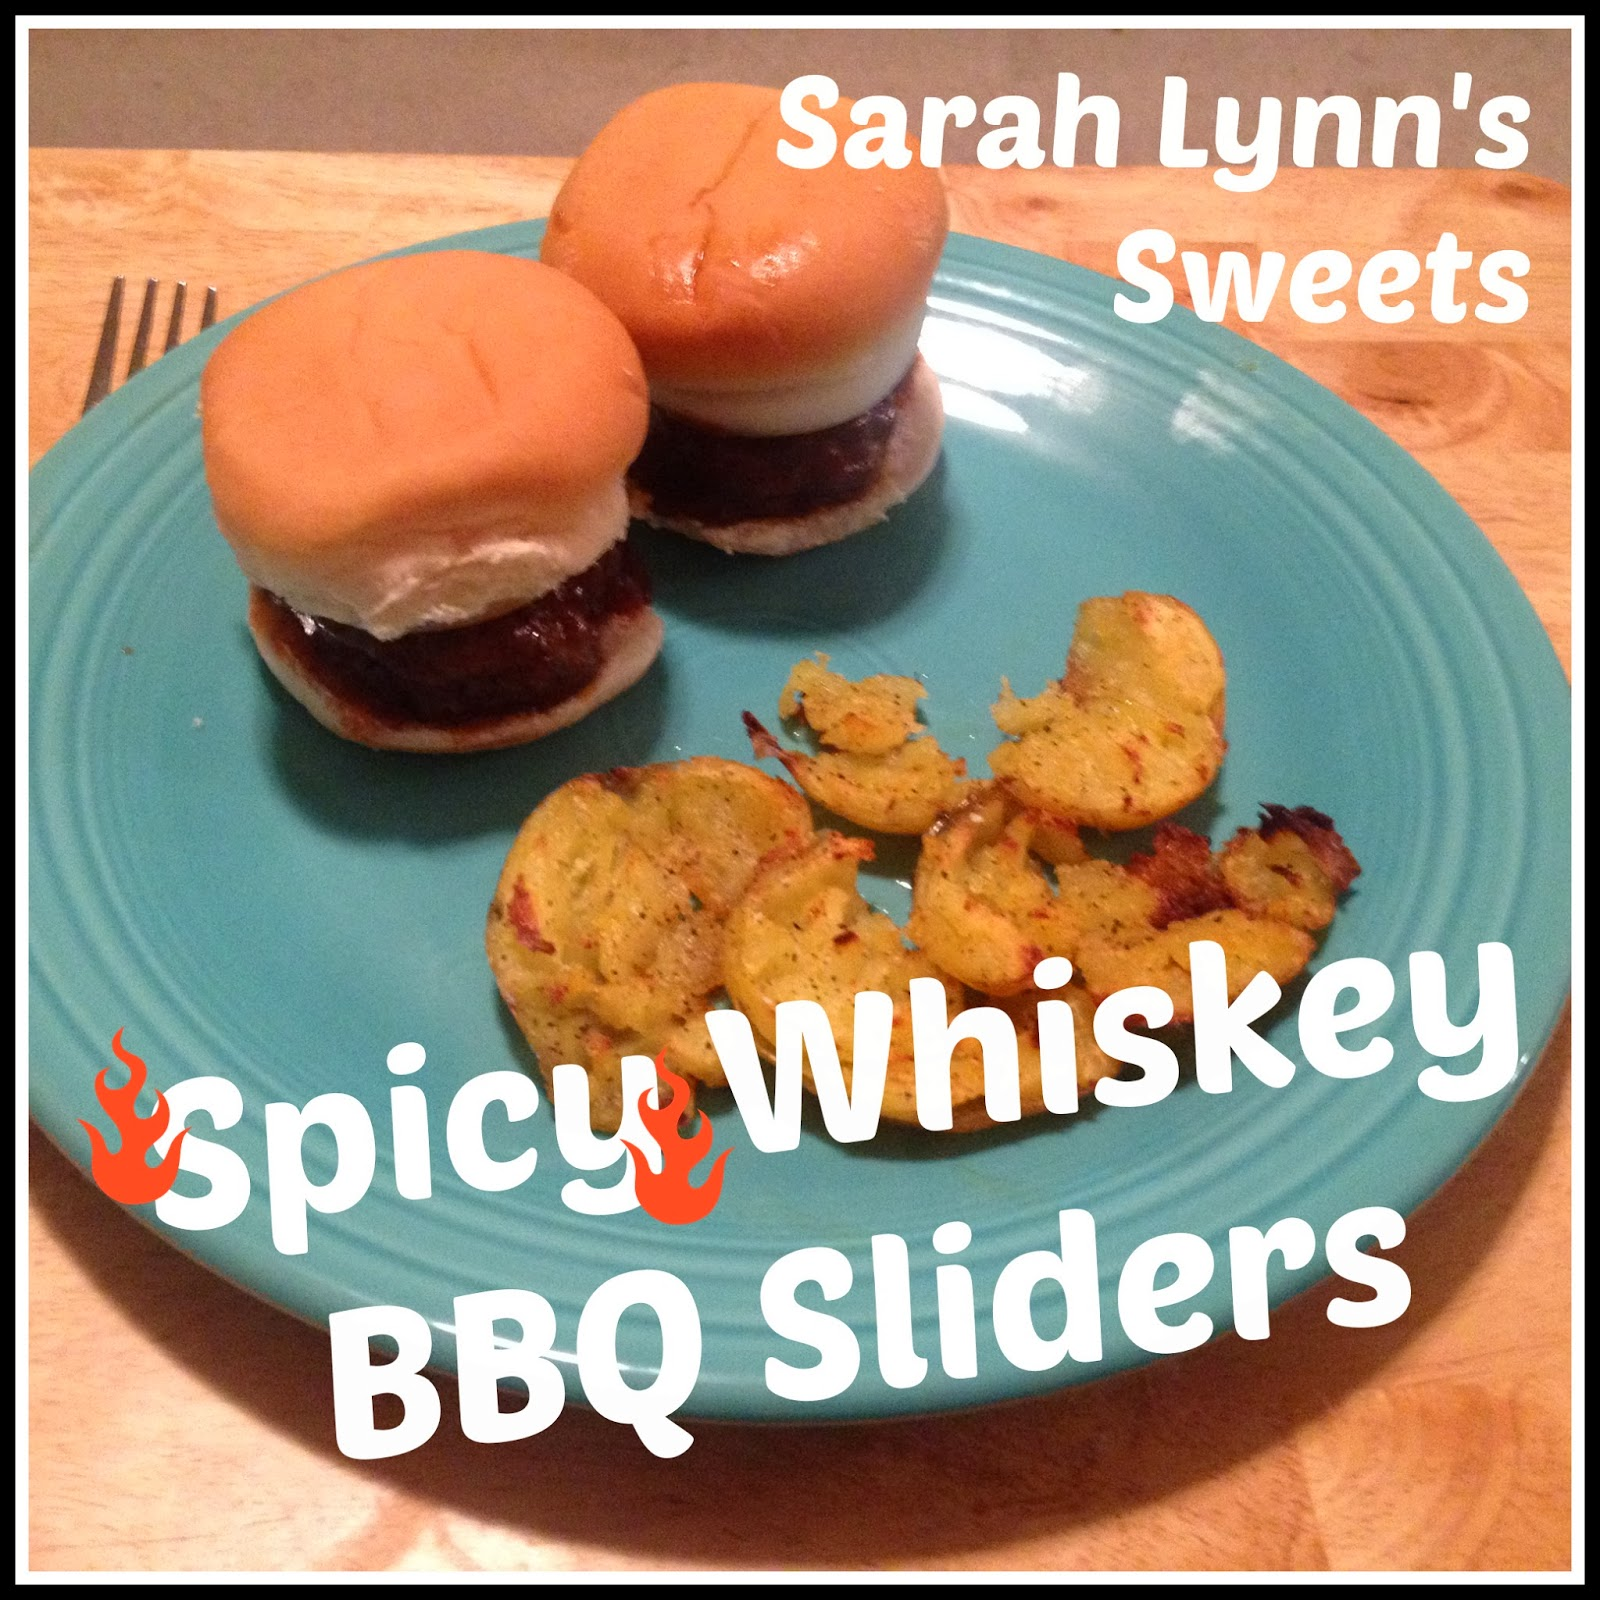 Sarah Lynn's Sweets: Spicy Whiskey BBQ Sliders